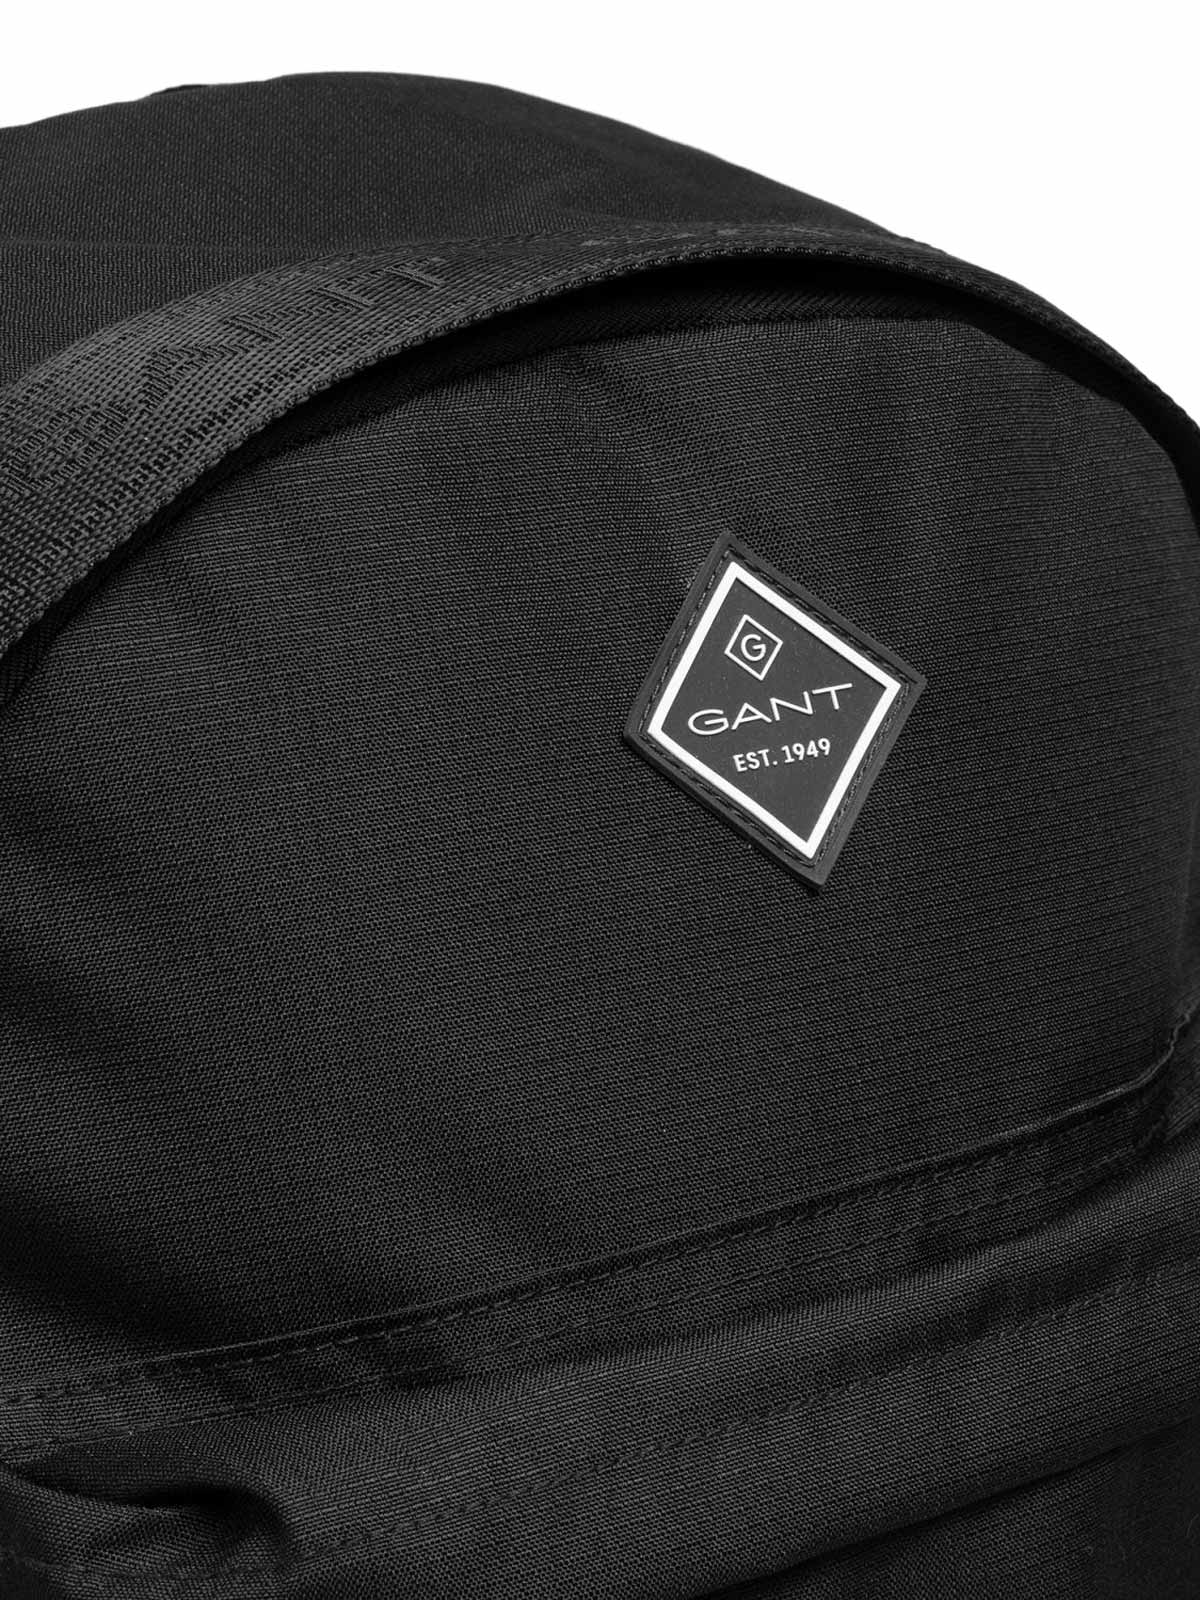 Picture of Gant | Bag D1. Gant Sport Backpack